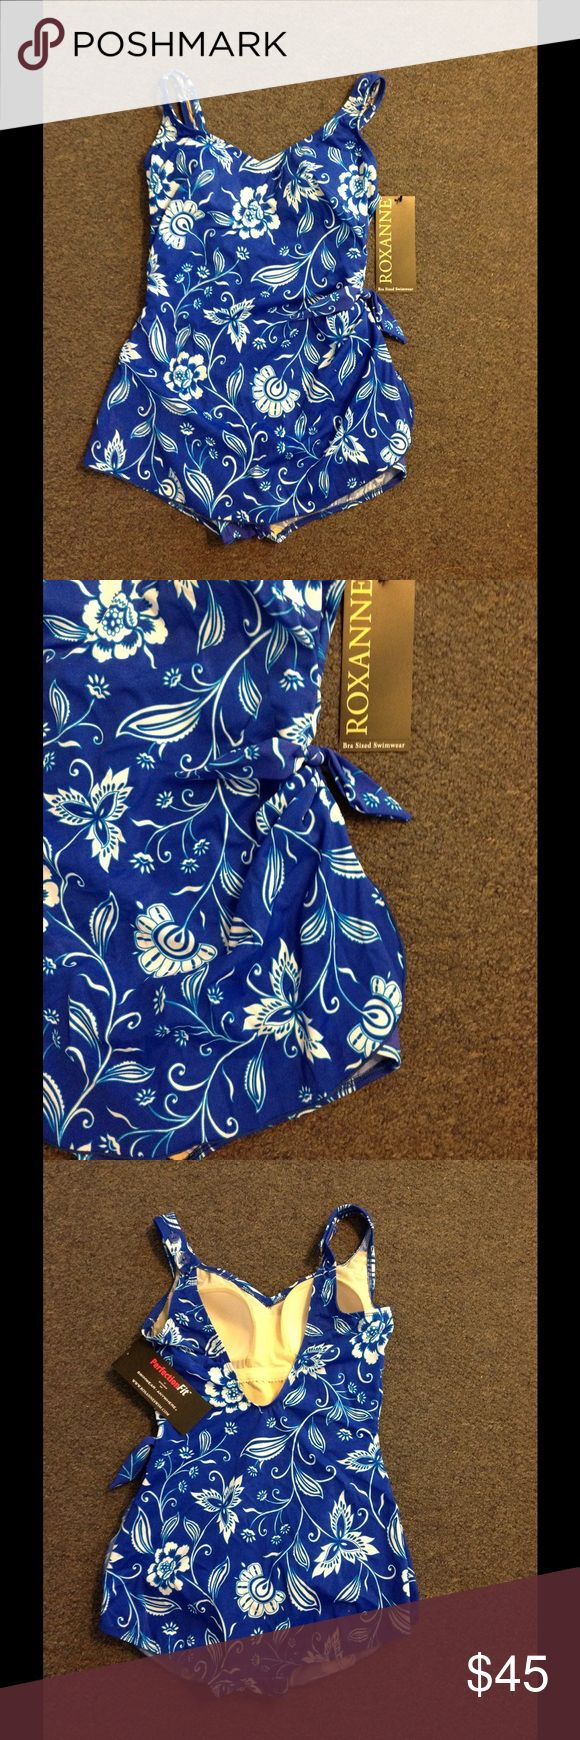 Roxanne Retro Blue Floral Print Skirt Swimsuit 12 Super nice Roxanne swimsuit. Blue floral print in size 12/36B. Extra firming tummy control with full coverage in the behind area. Skirted front with a tie on the side. Brand new with tags. Roxanne Swim One Pieces